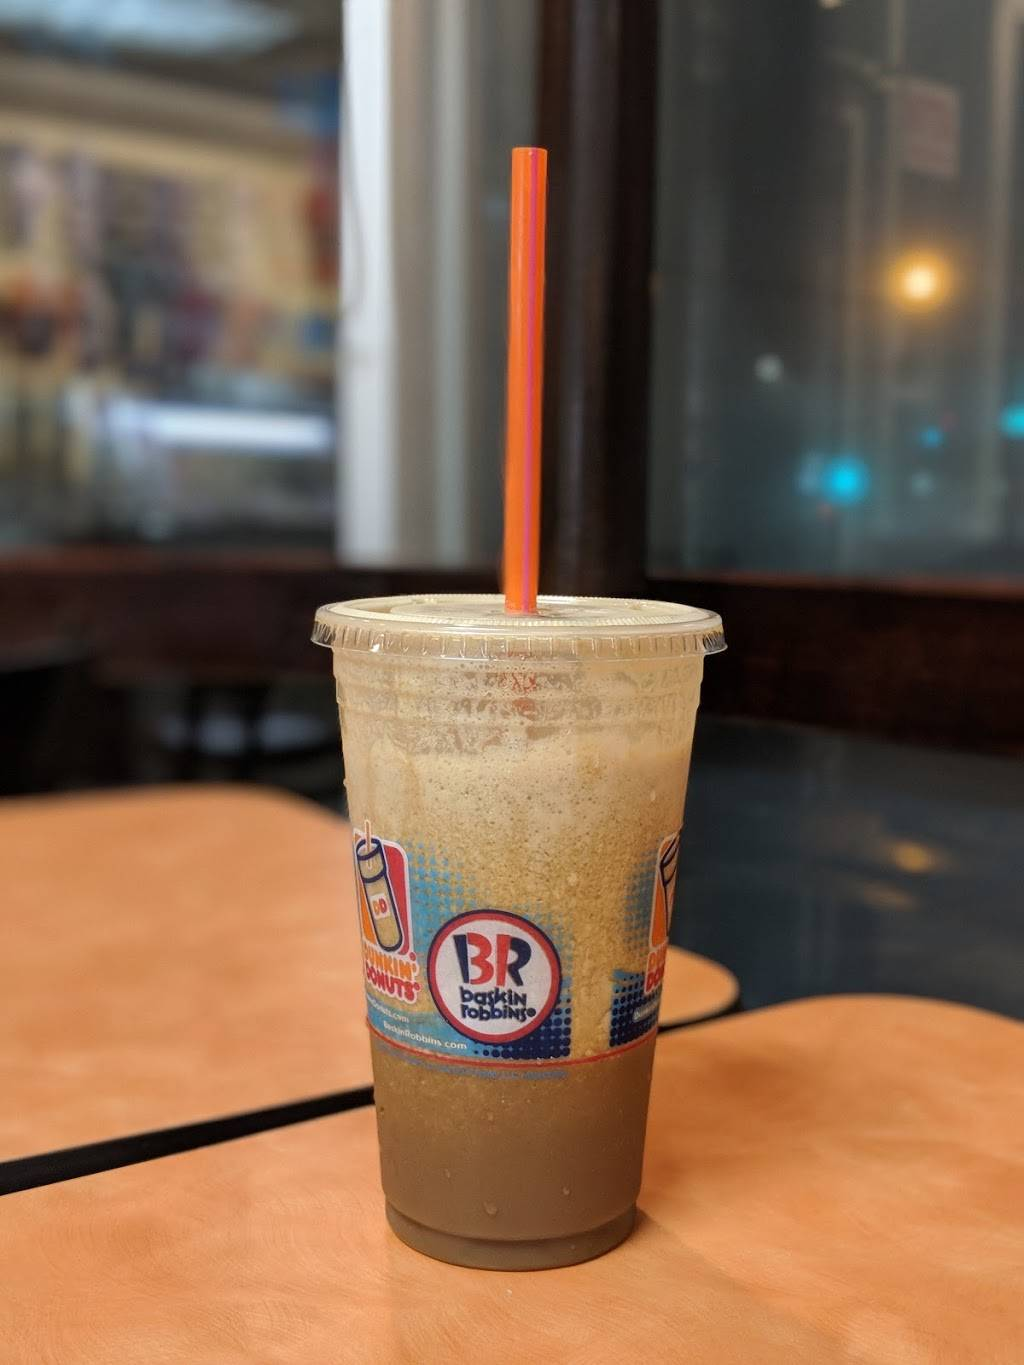 Dunkin Donuts   cafe   2062 Lakeville Rd, New Hyde Park, NY 11040, USA   5167758630 OR +1 516-775-8630